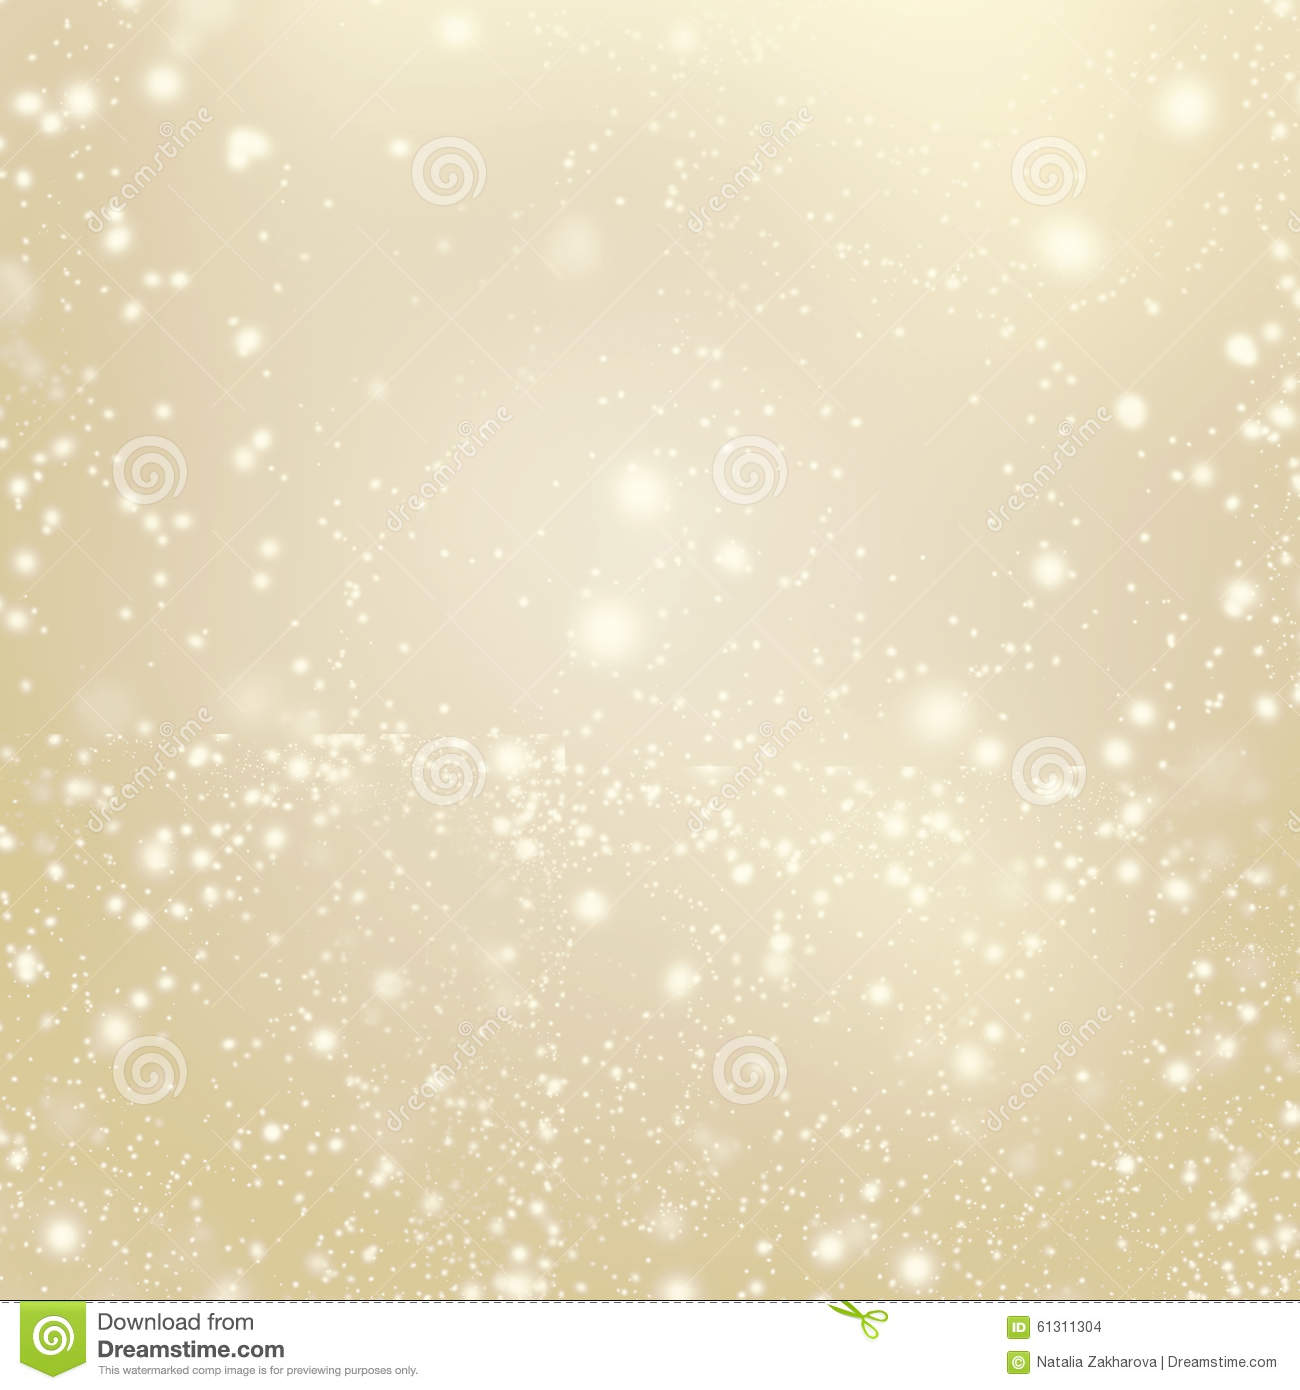 Abstract Gold Glittering Christmas Lights Blurred